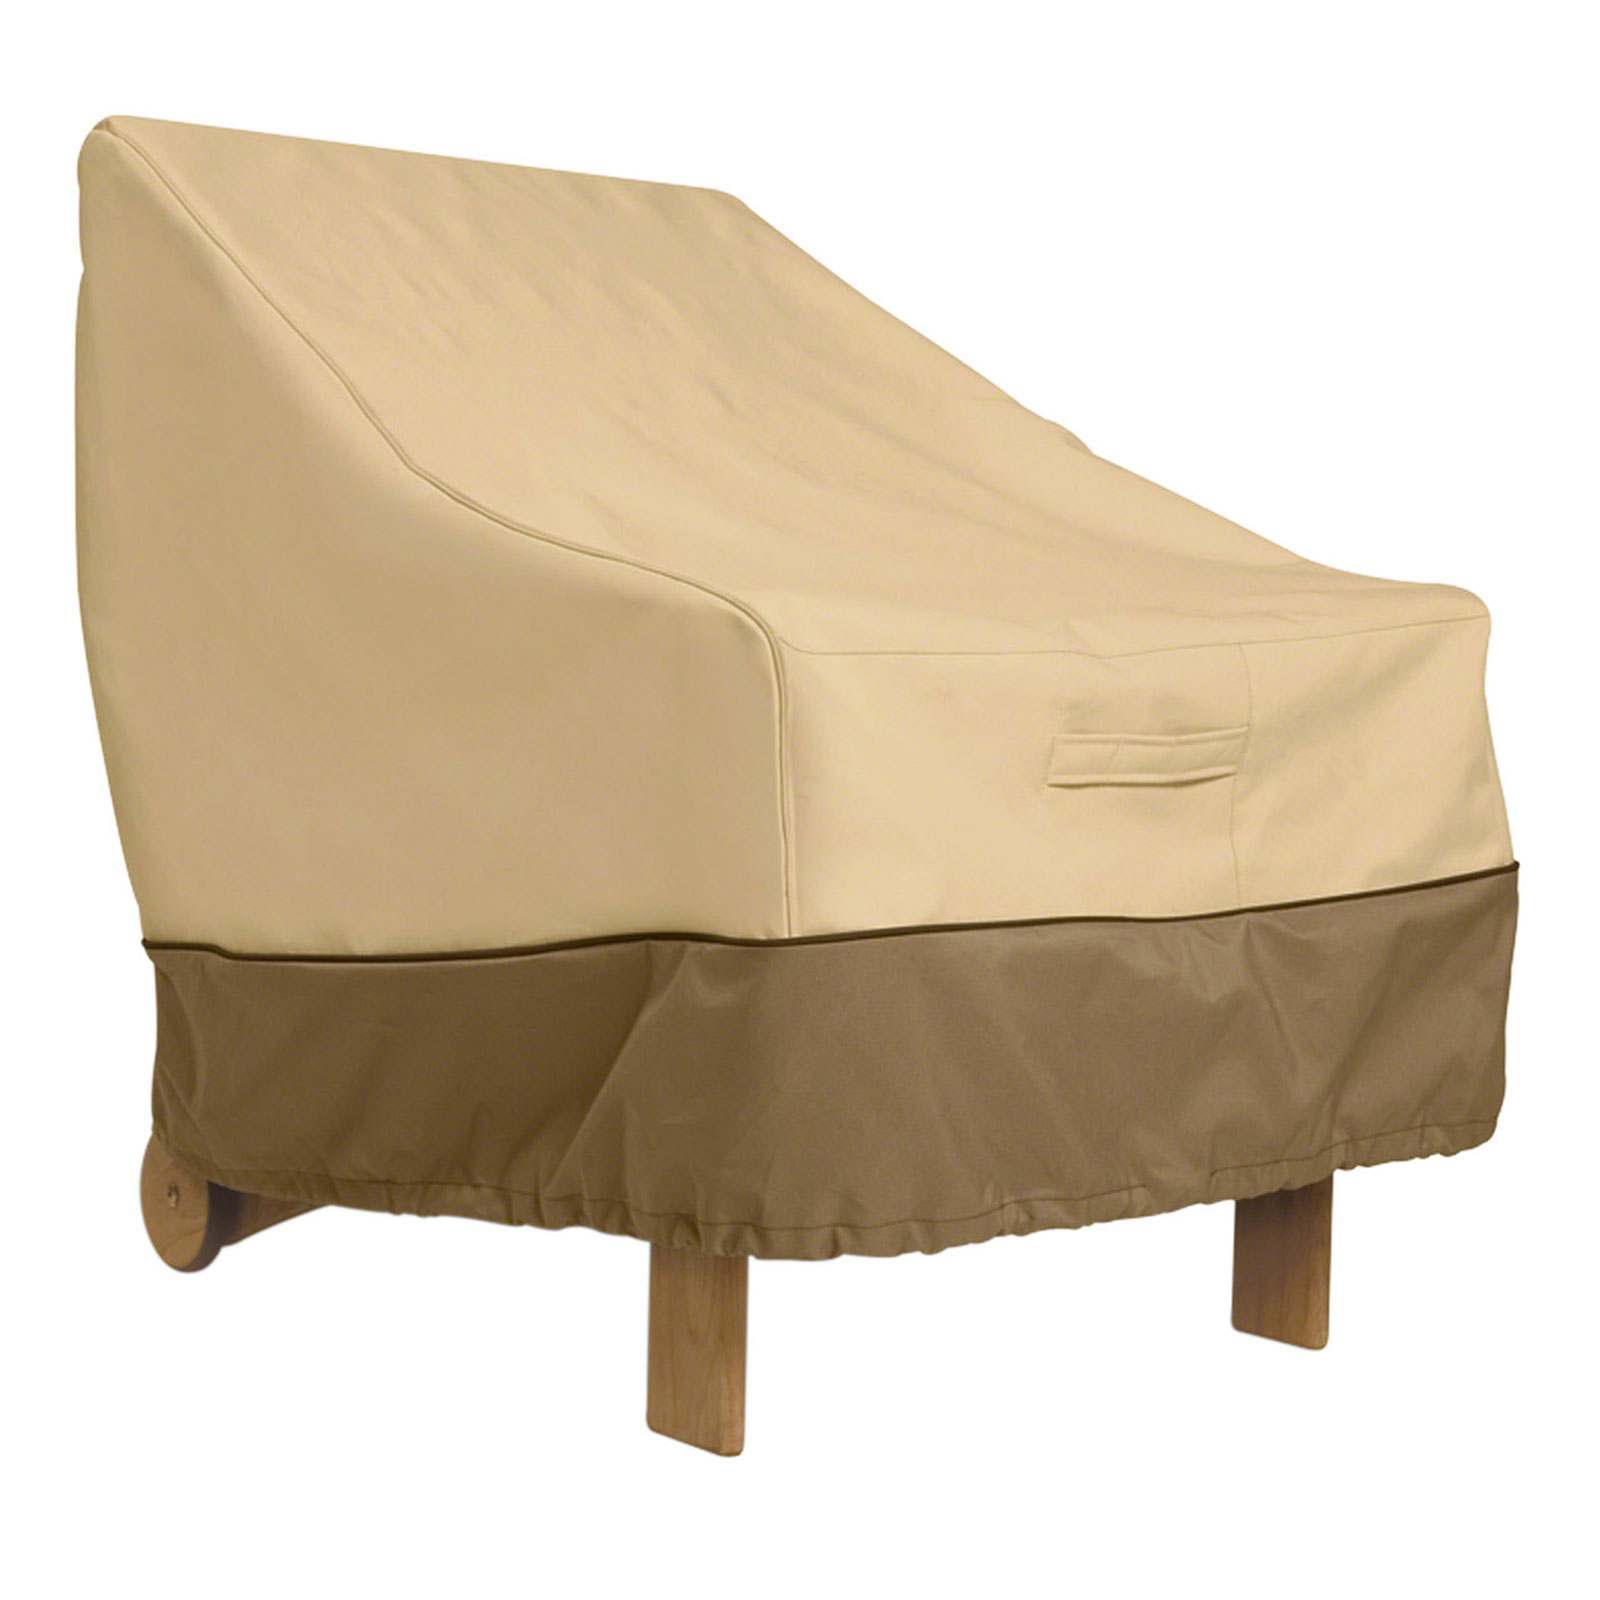 Lounge chair cover veranda in patio furniture covers for Furniture covers